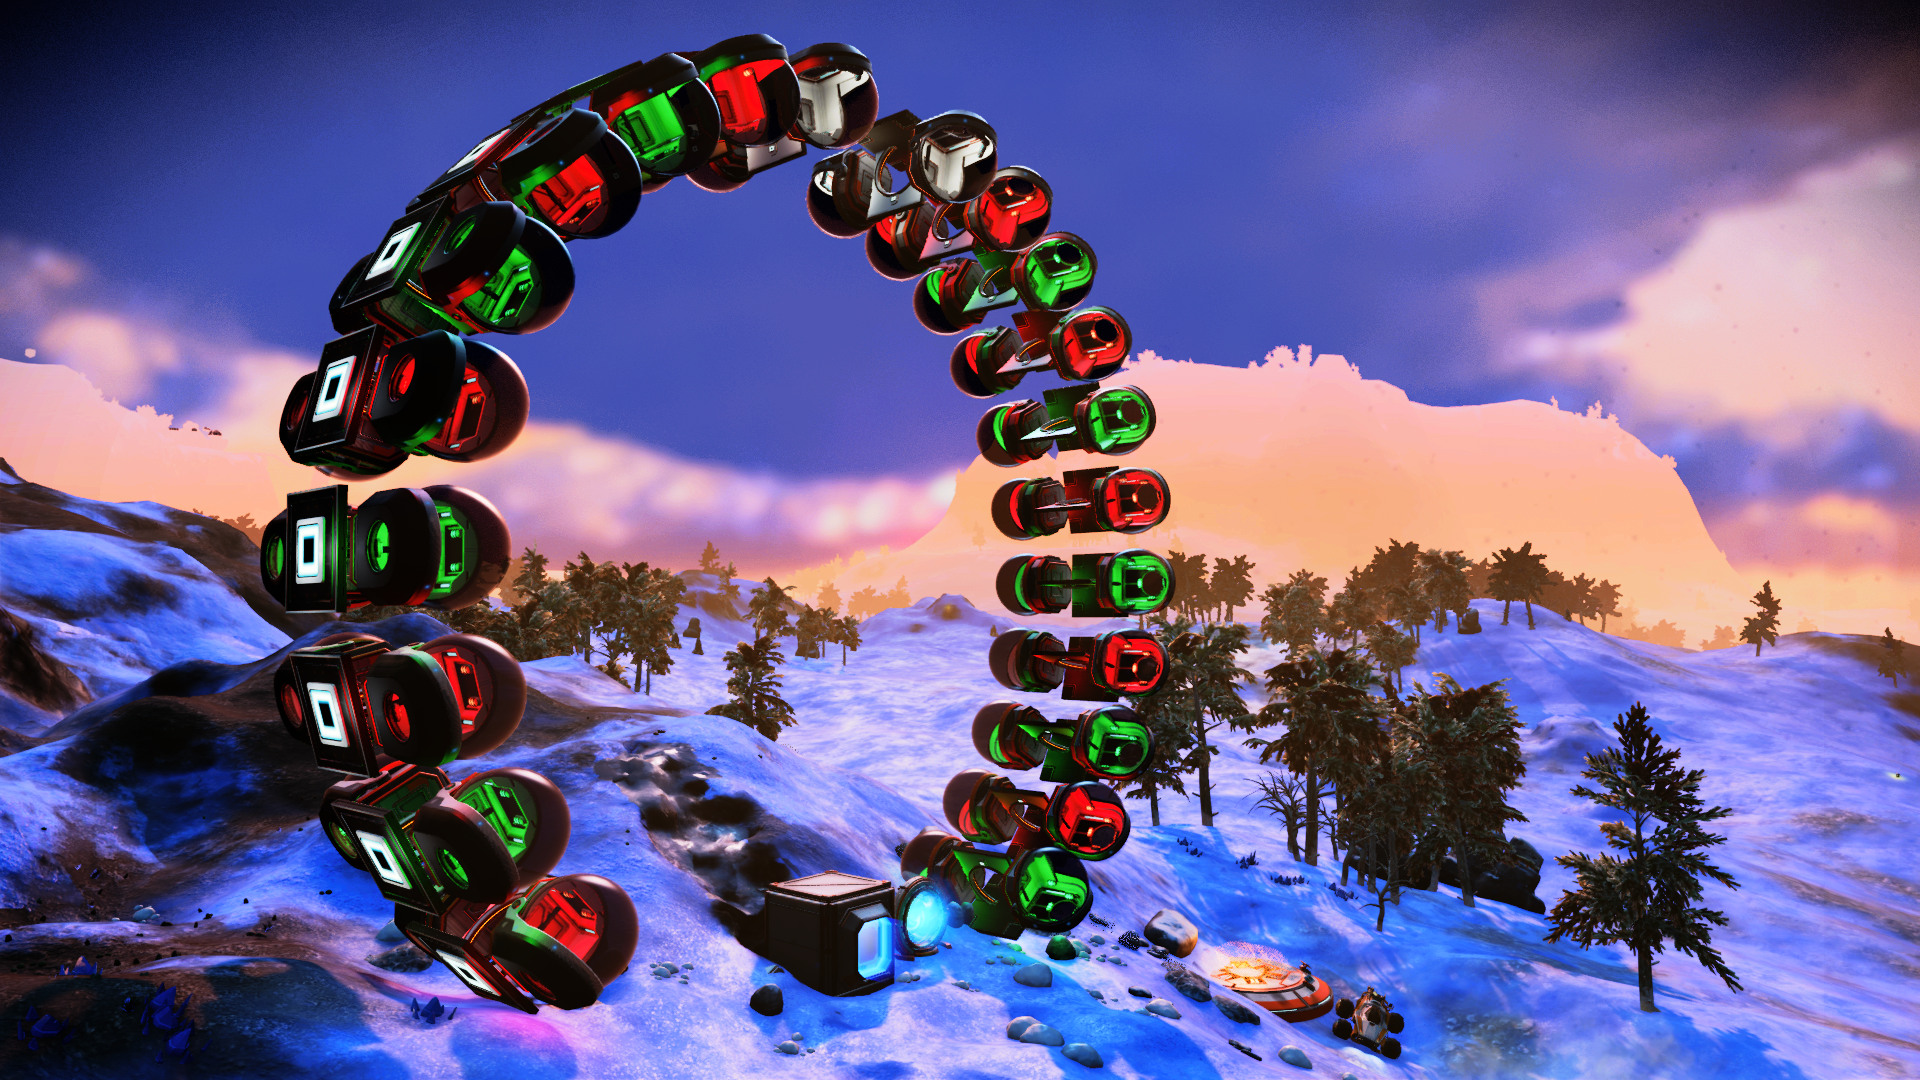 No Man's Sky's best and brightest are trying to build a perfect colony